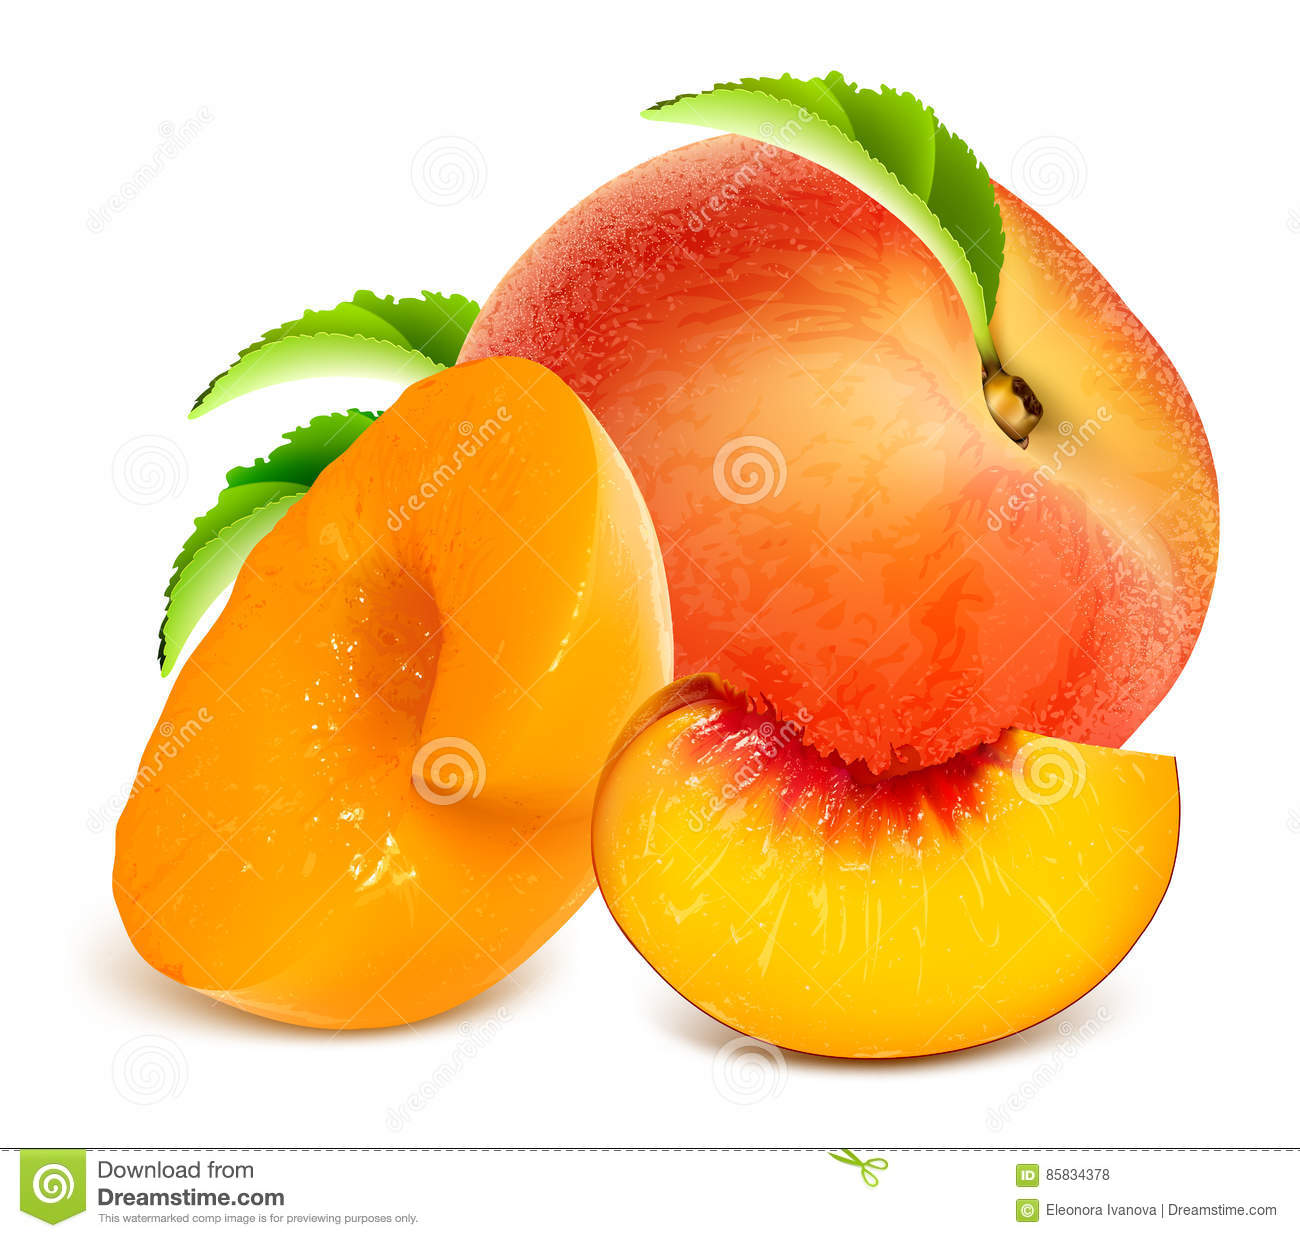 Ripe peaches. Whole and slices